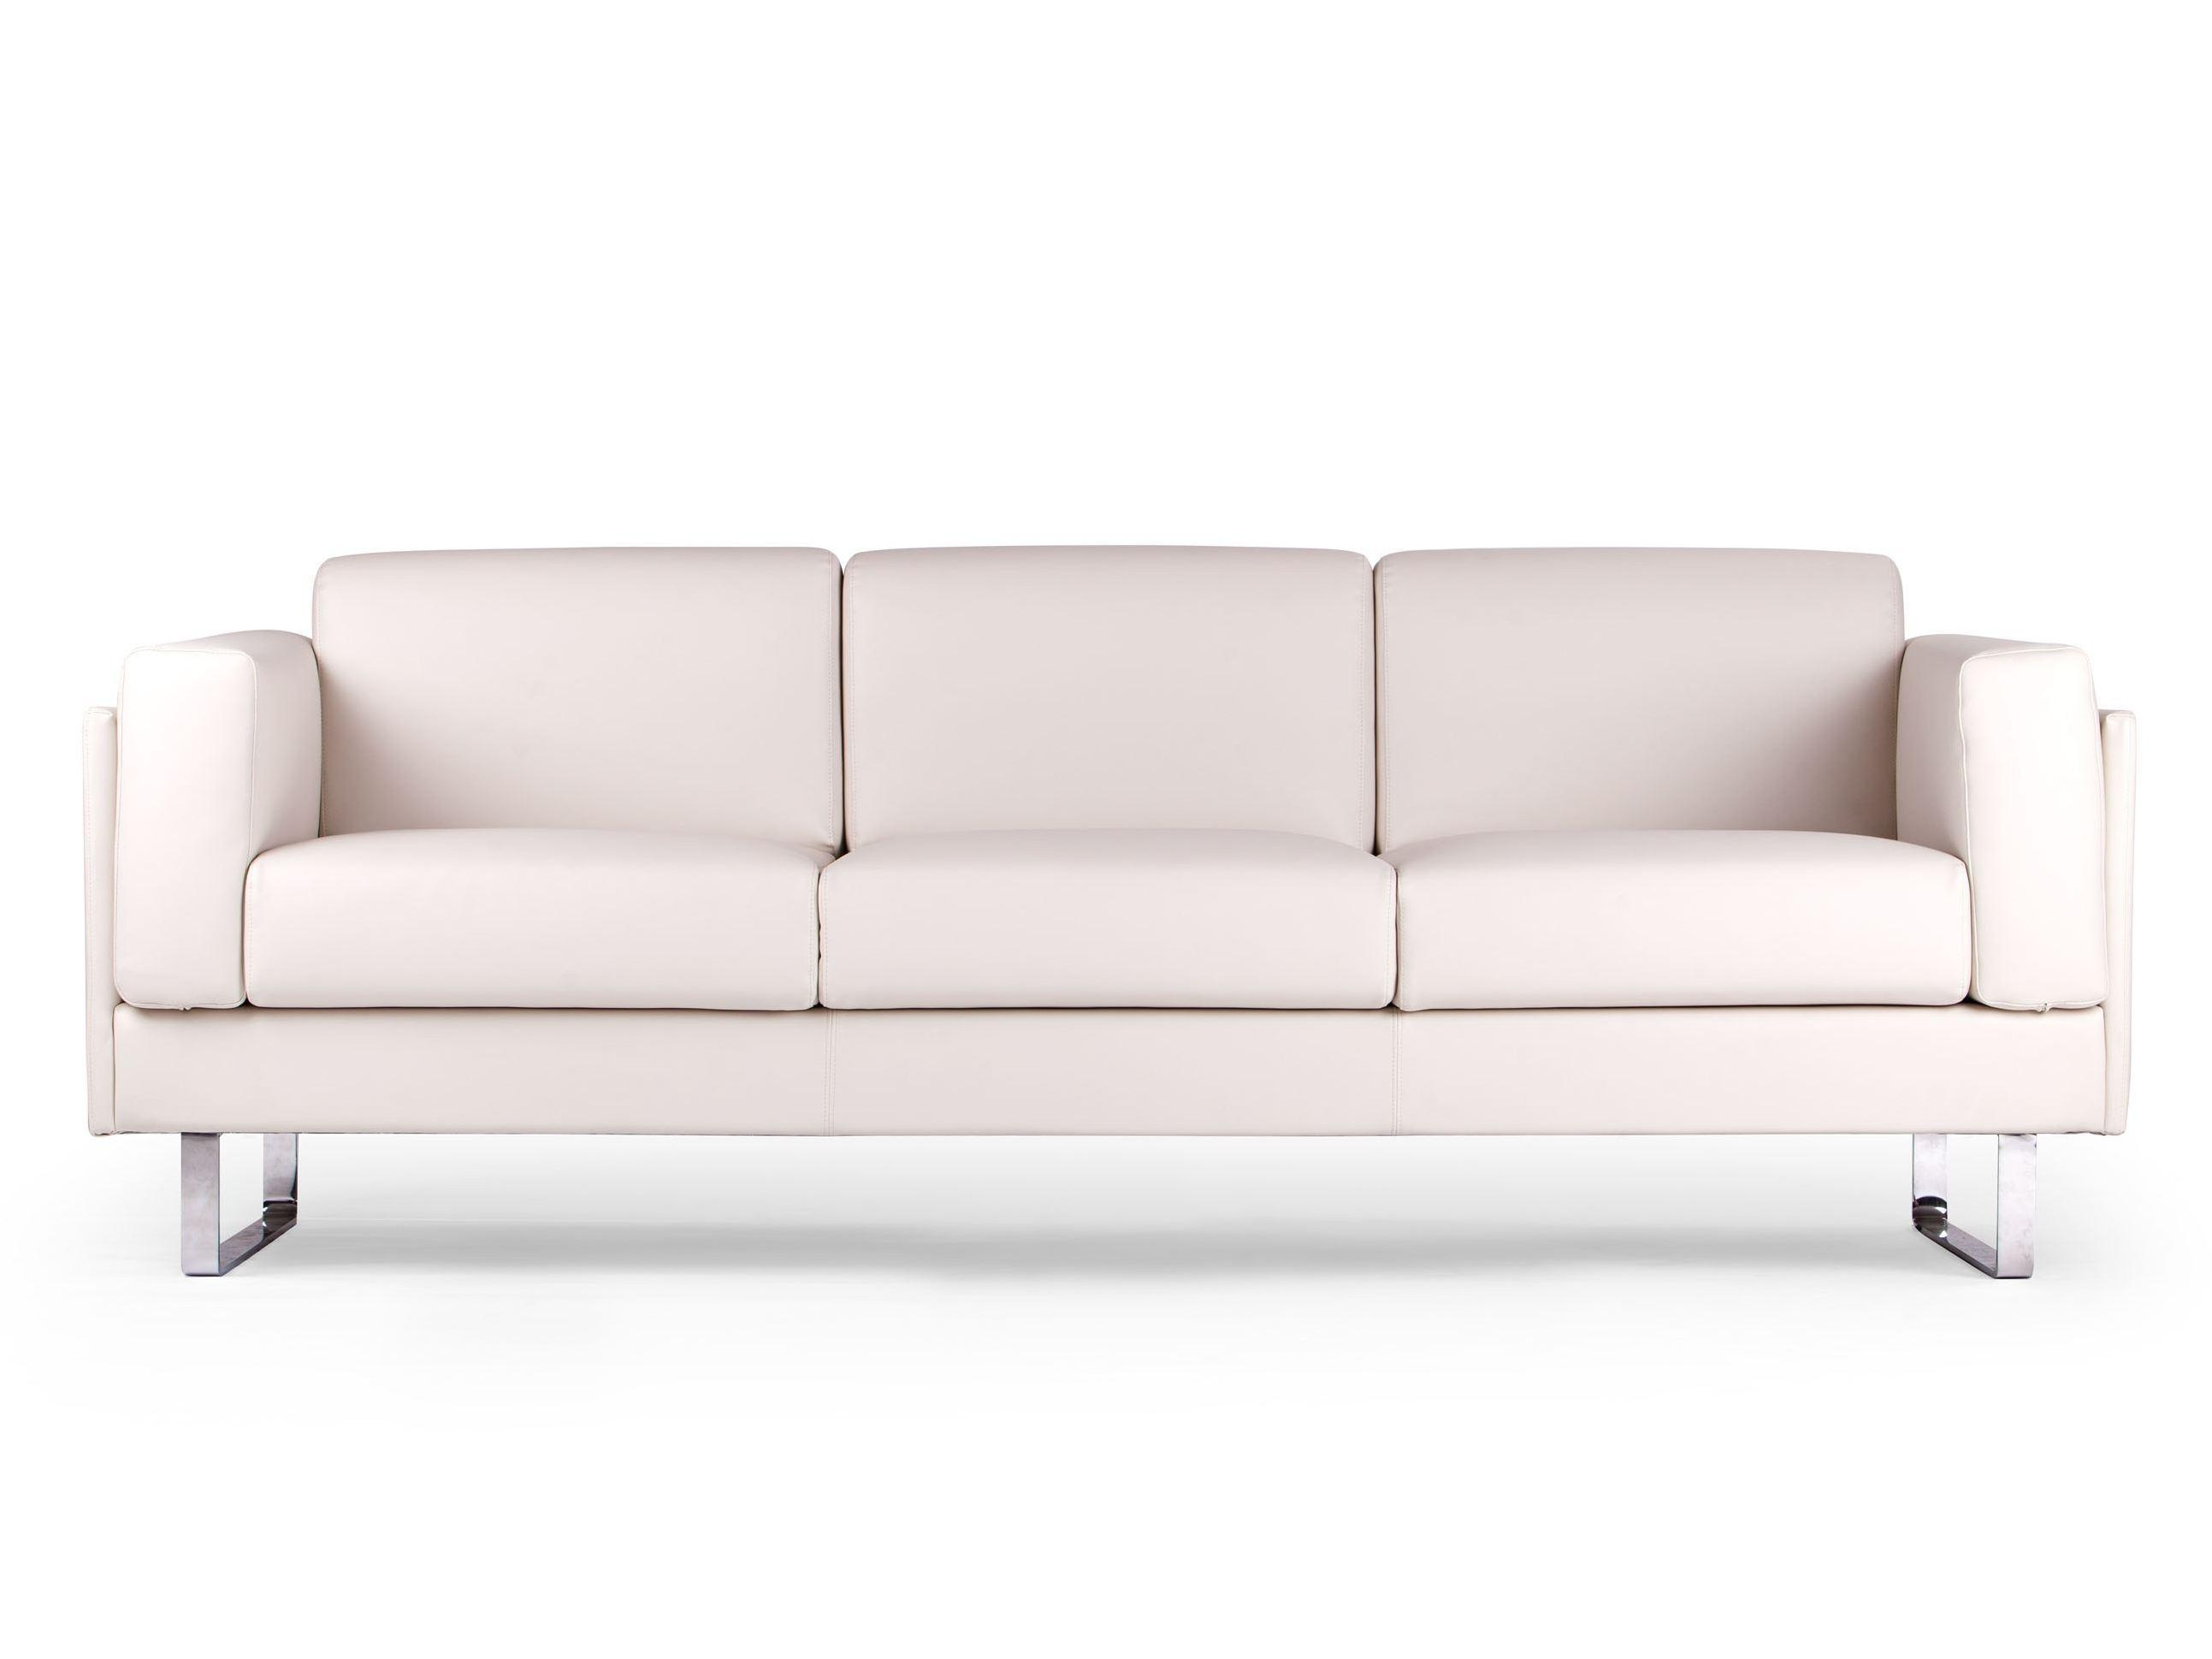 Cab | 3 Seater Sofatrue Design For Three Seater Sofas (Image 7 of 20)